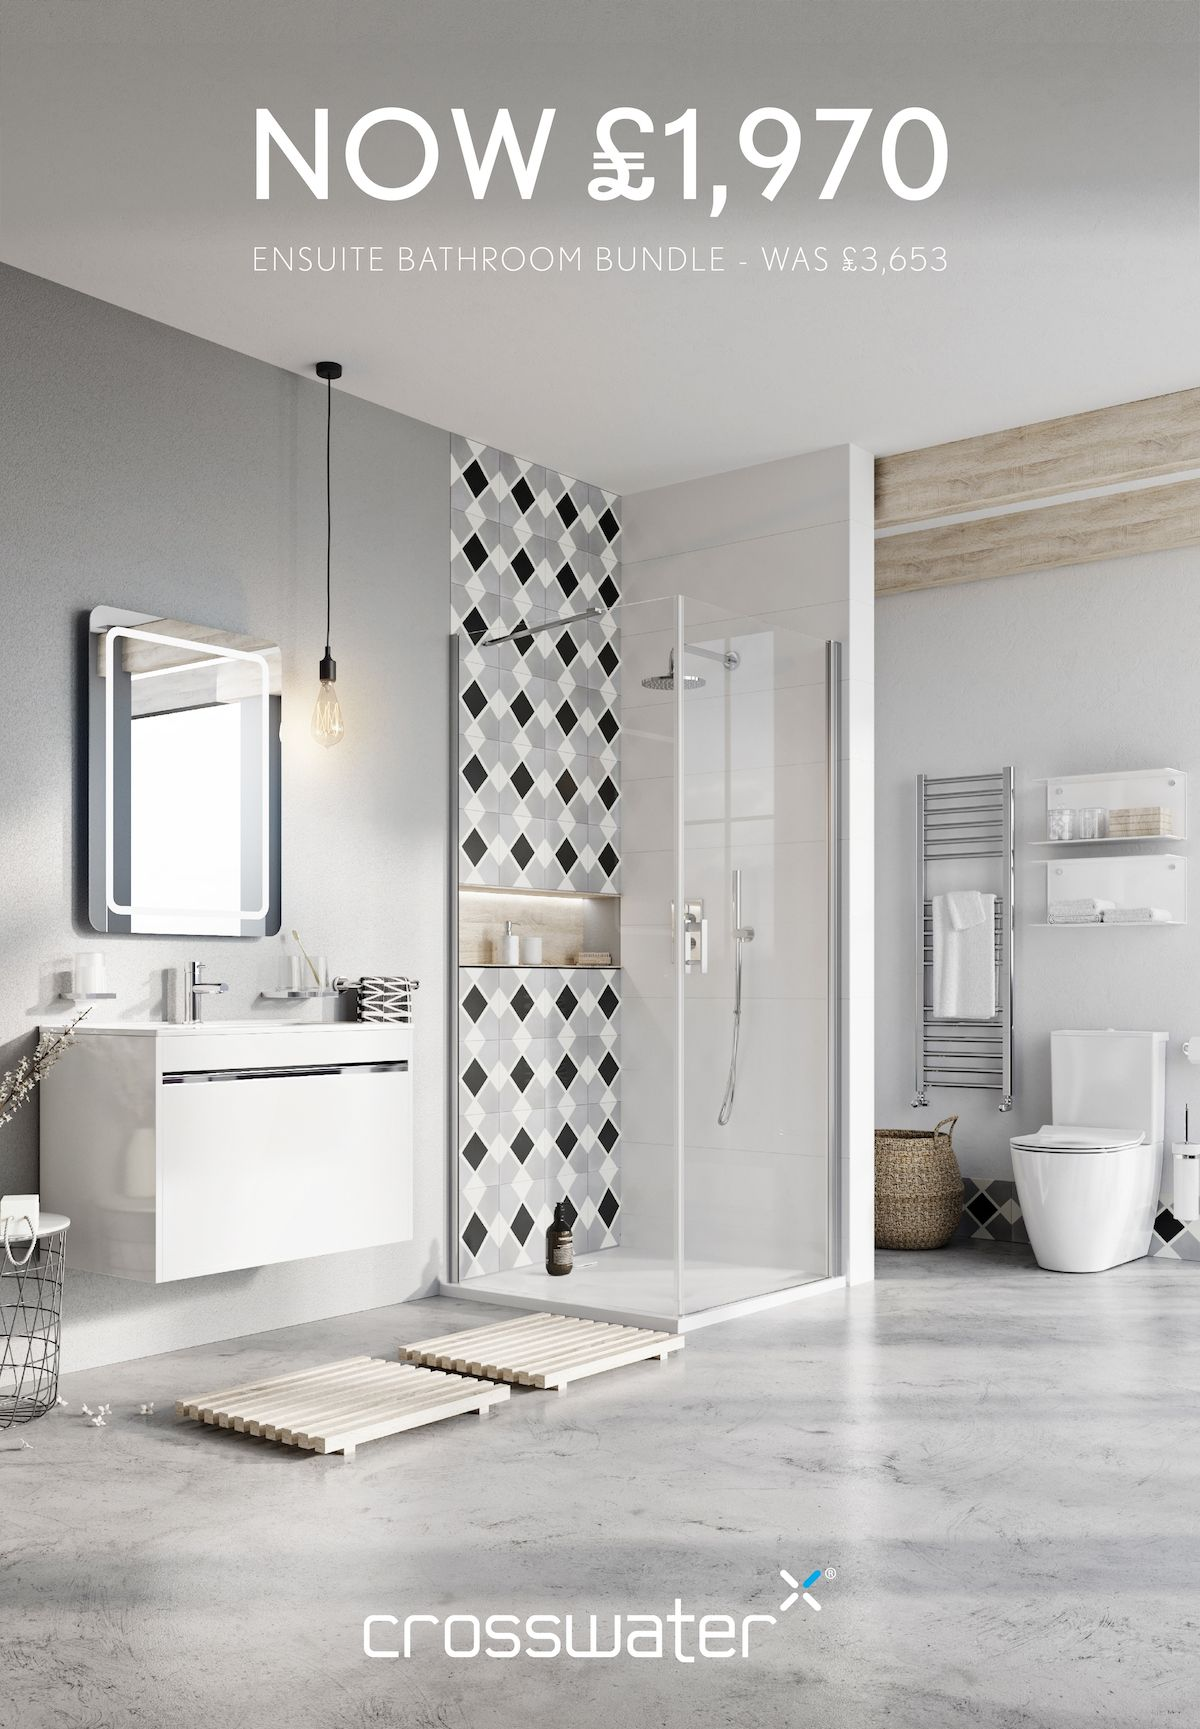 Get up to 60% off in our SUPER SALE. This ensuite bathroom bundle is ...